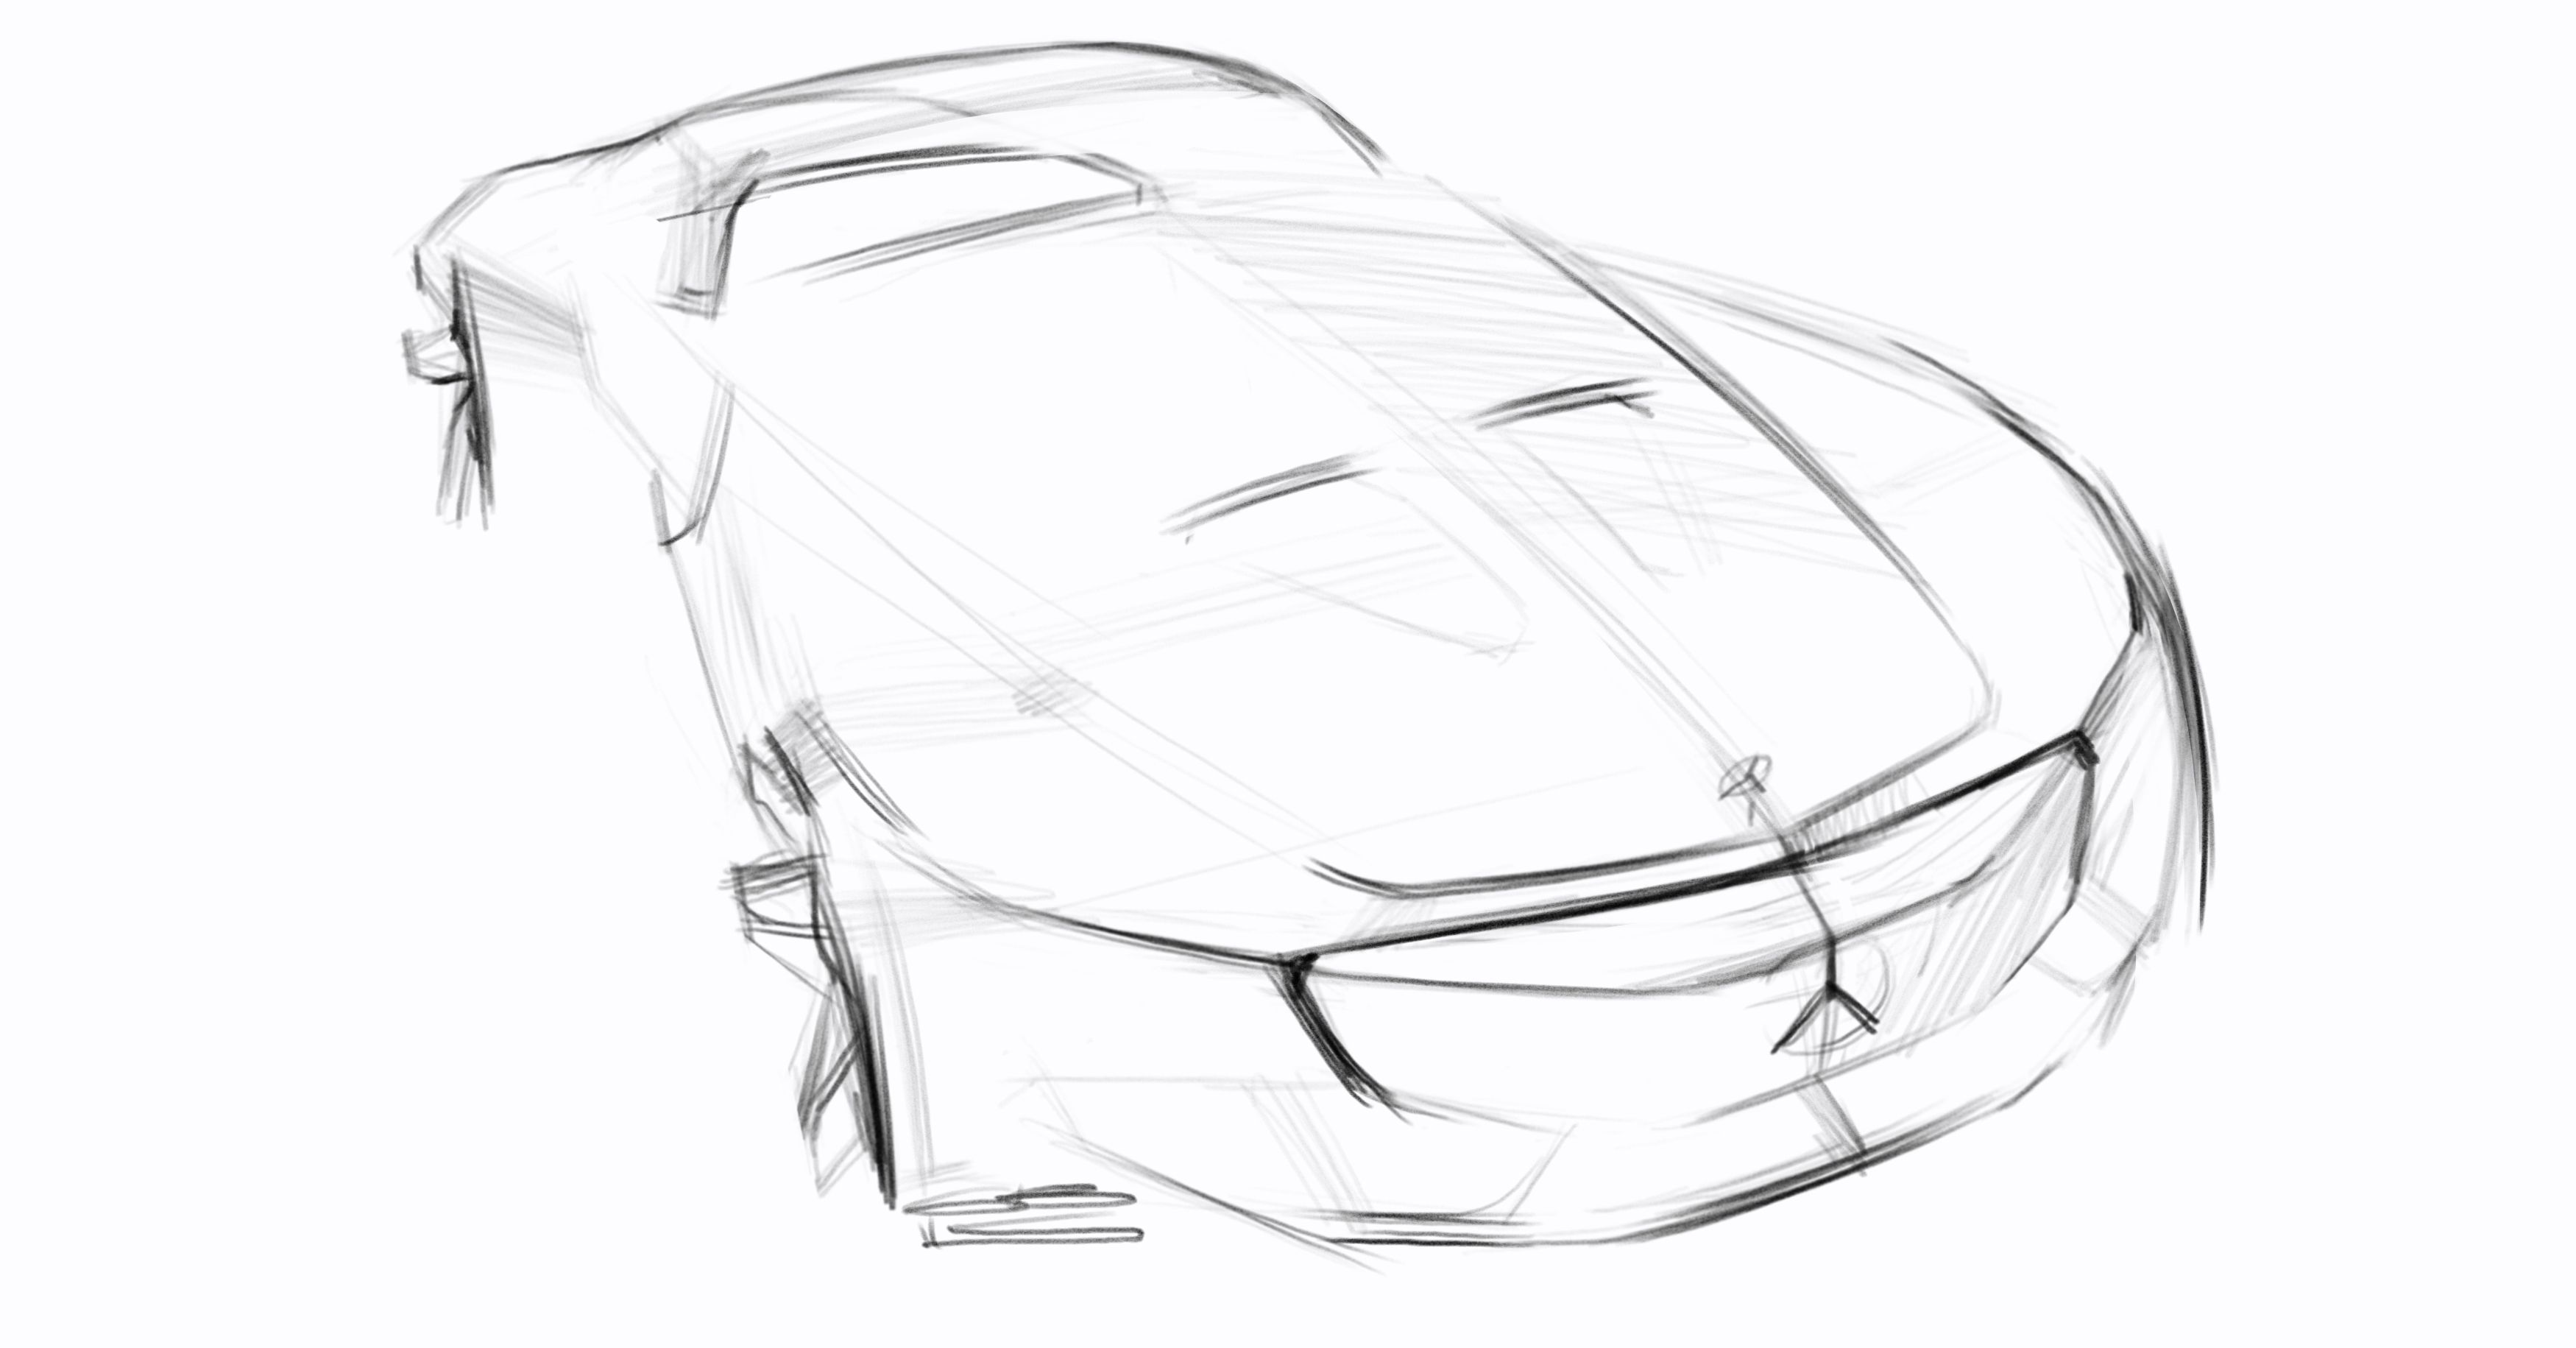 Car design sketches #7 on Behance